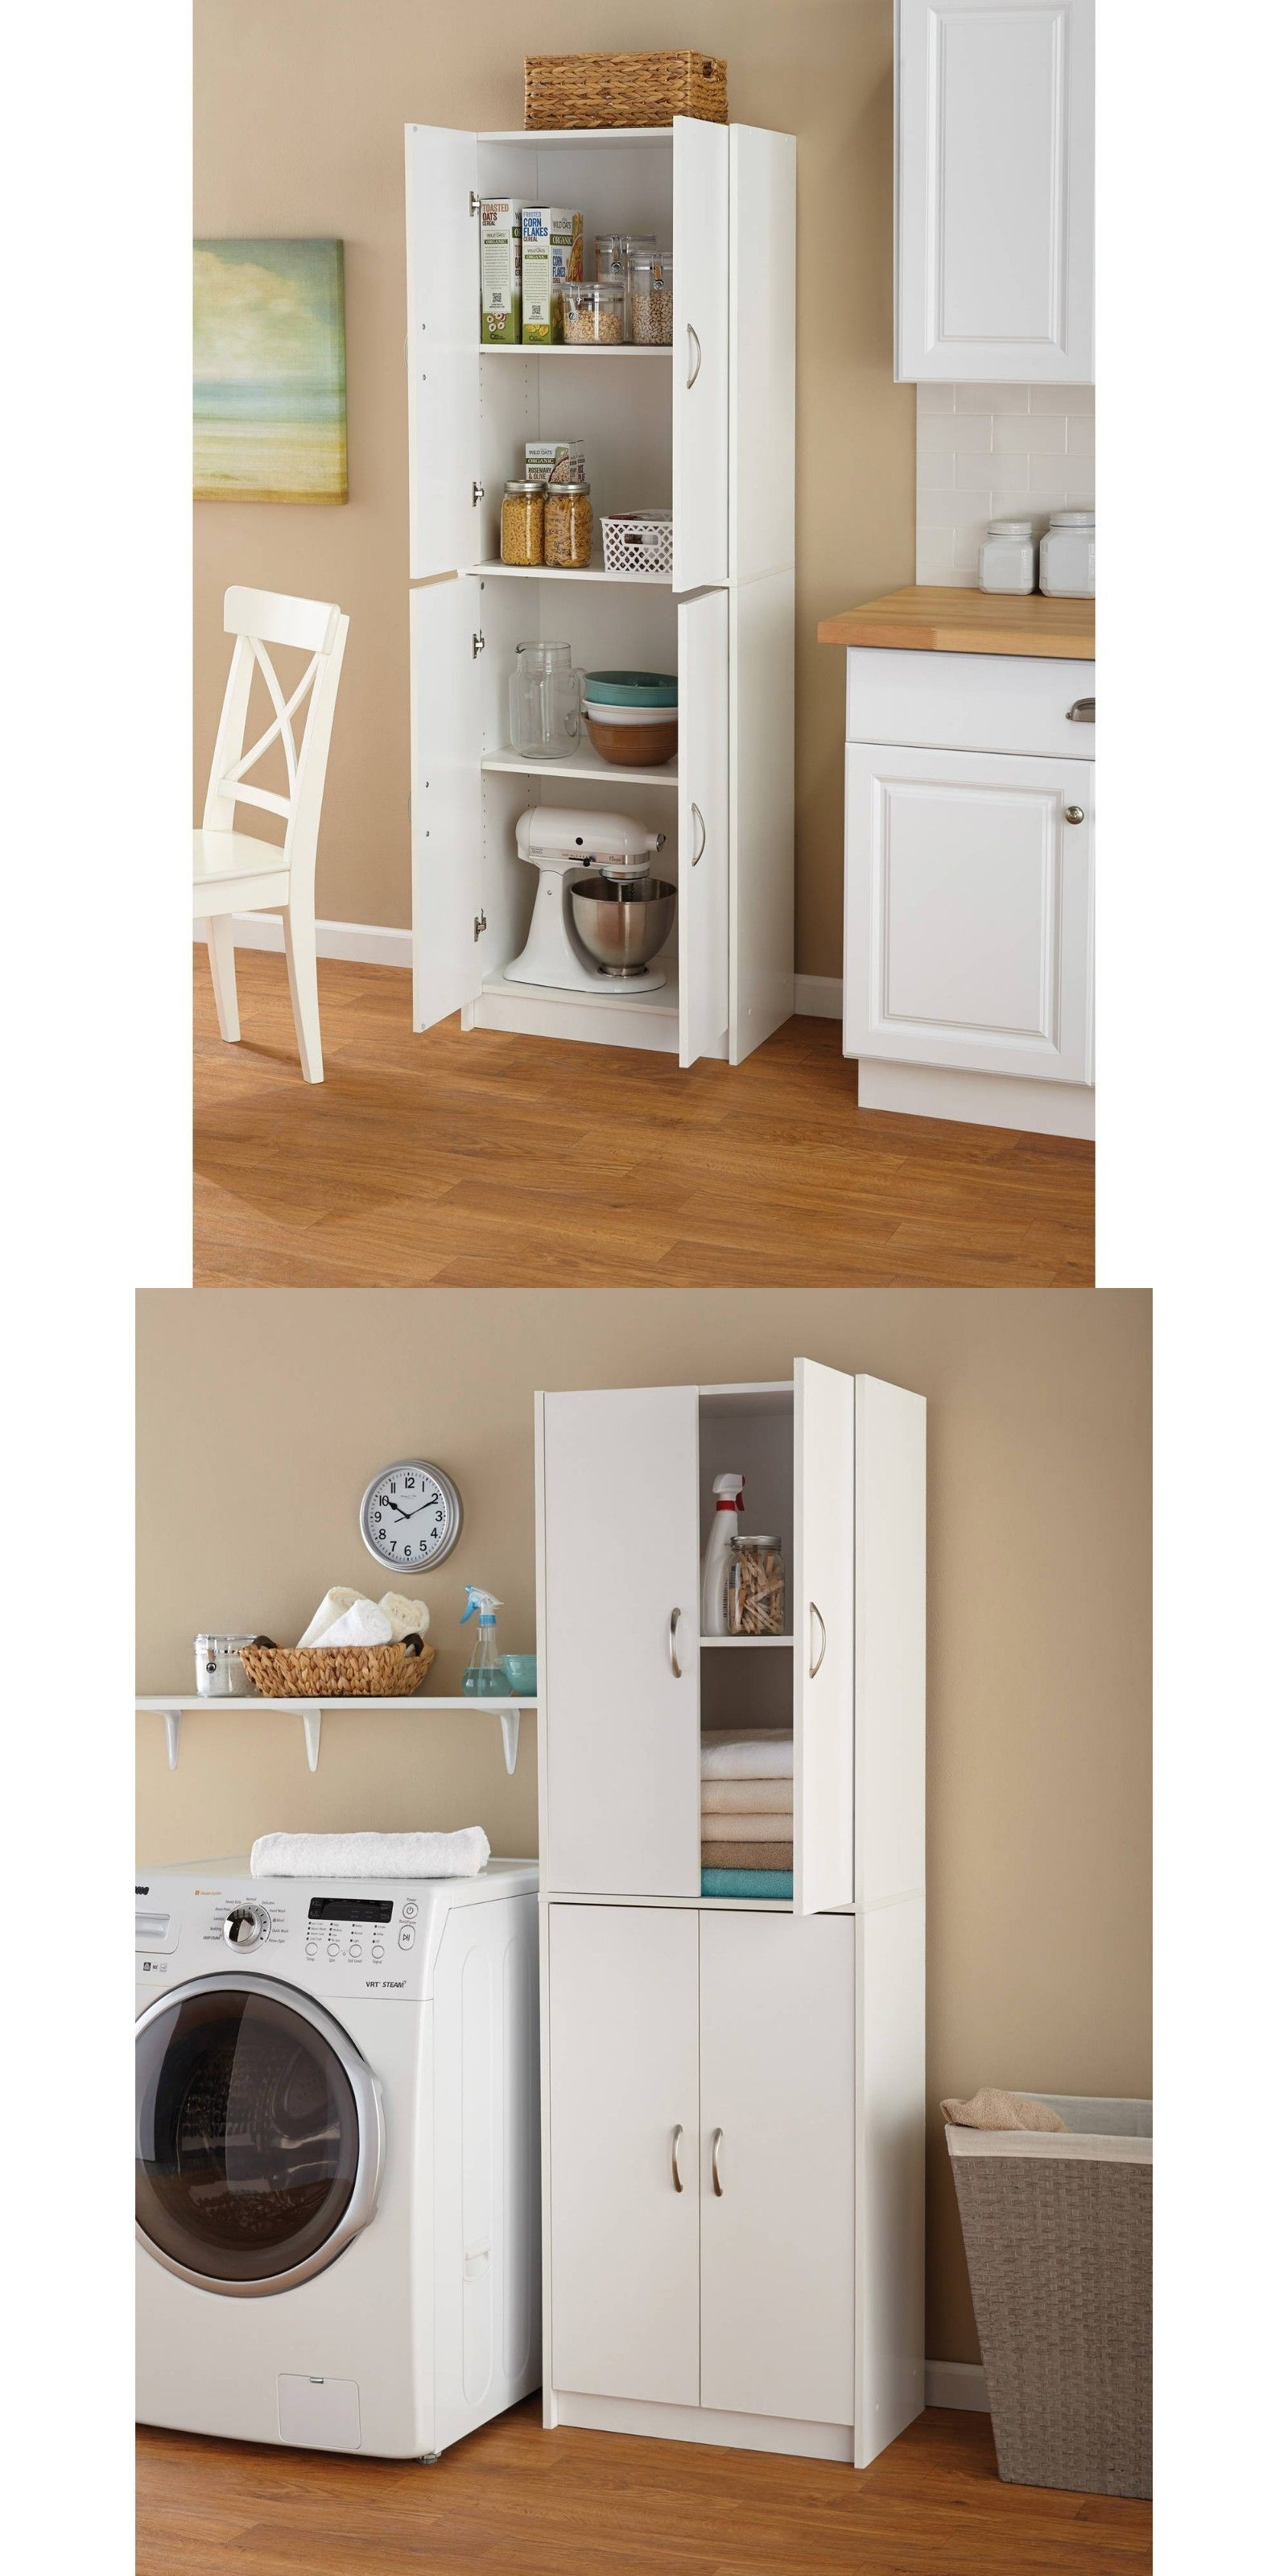 Cabinets And Cupboards 20487 Tall Kitchen Pantry Cabinet Freestanding Shelf White Pantry Storage Cabinet Kitchen Pantry Storage Cabinet Tall Kitchen Cabinets